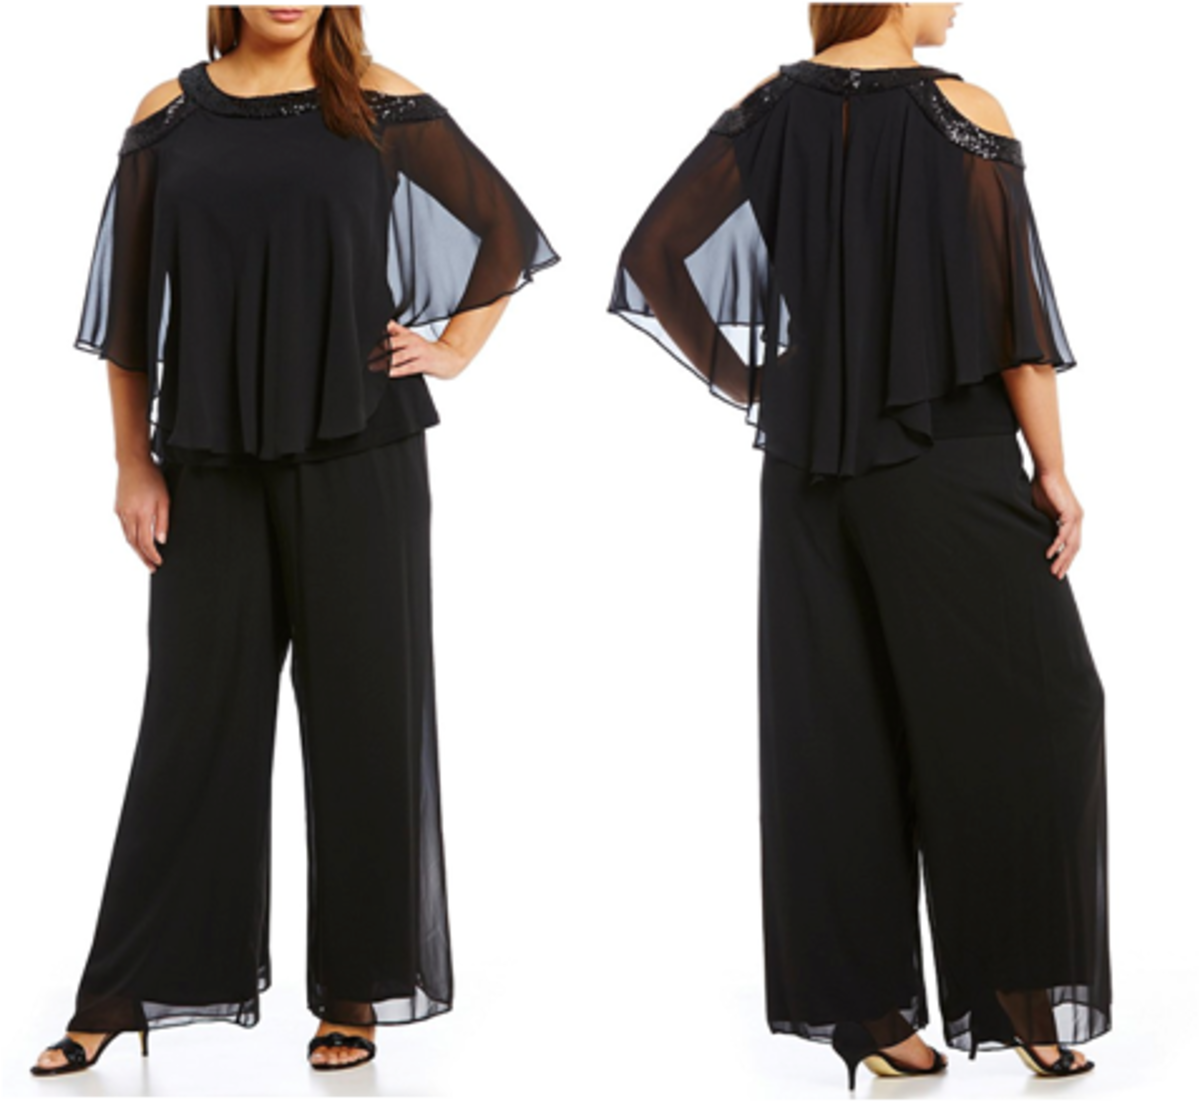 evening pant set with chiffon popover capelet, cold-shoulder sleeves, sequin trim at neck and shoulder